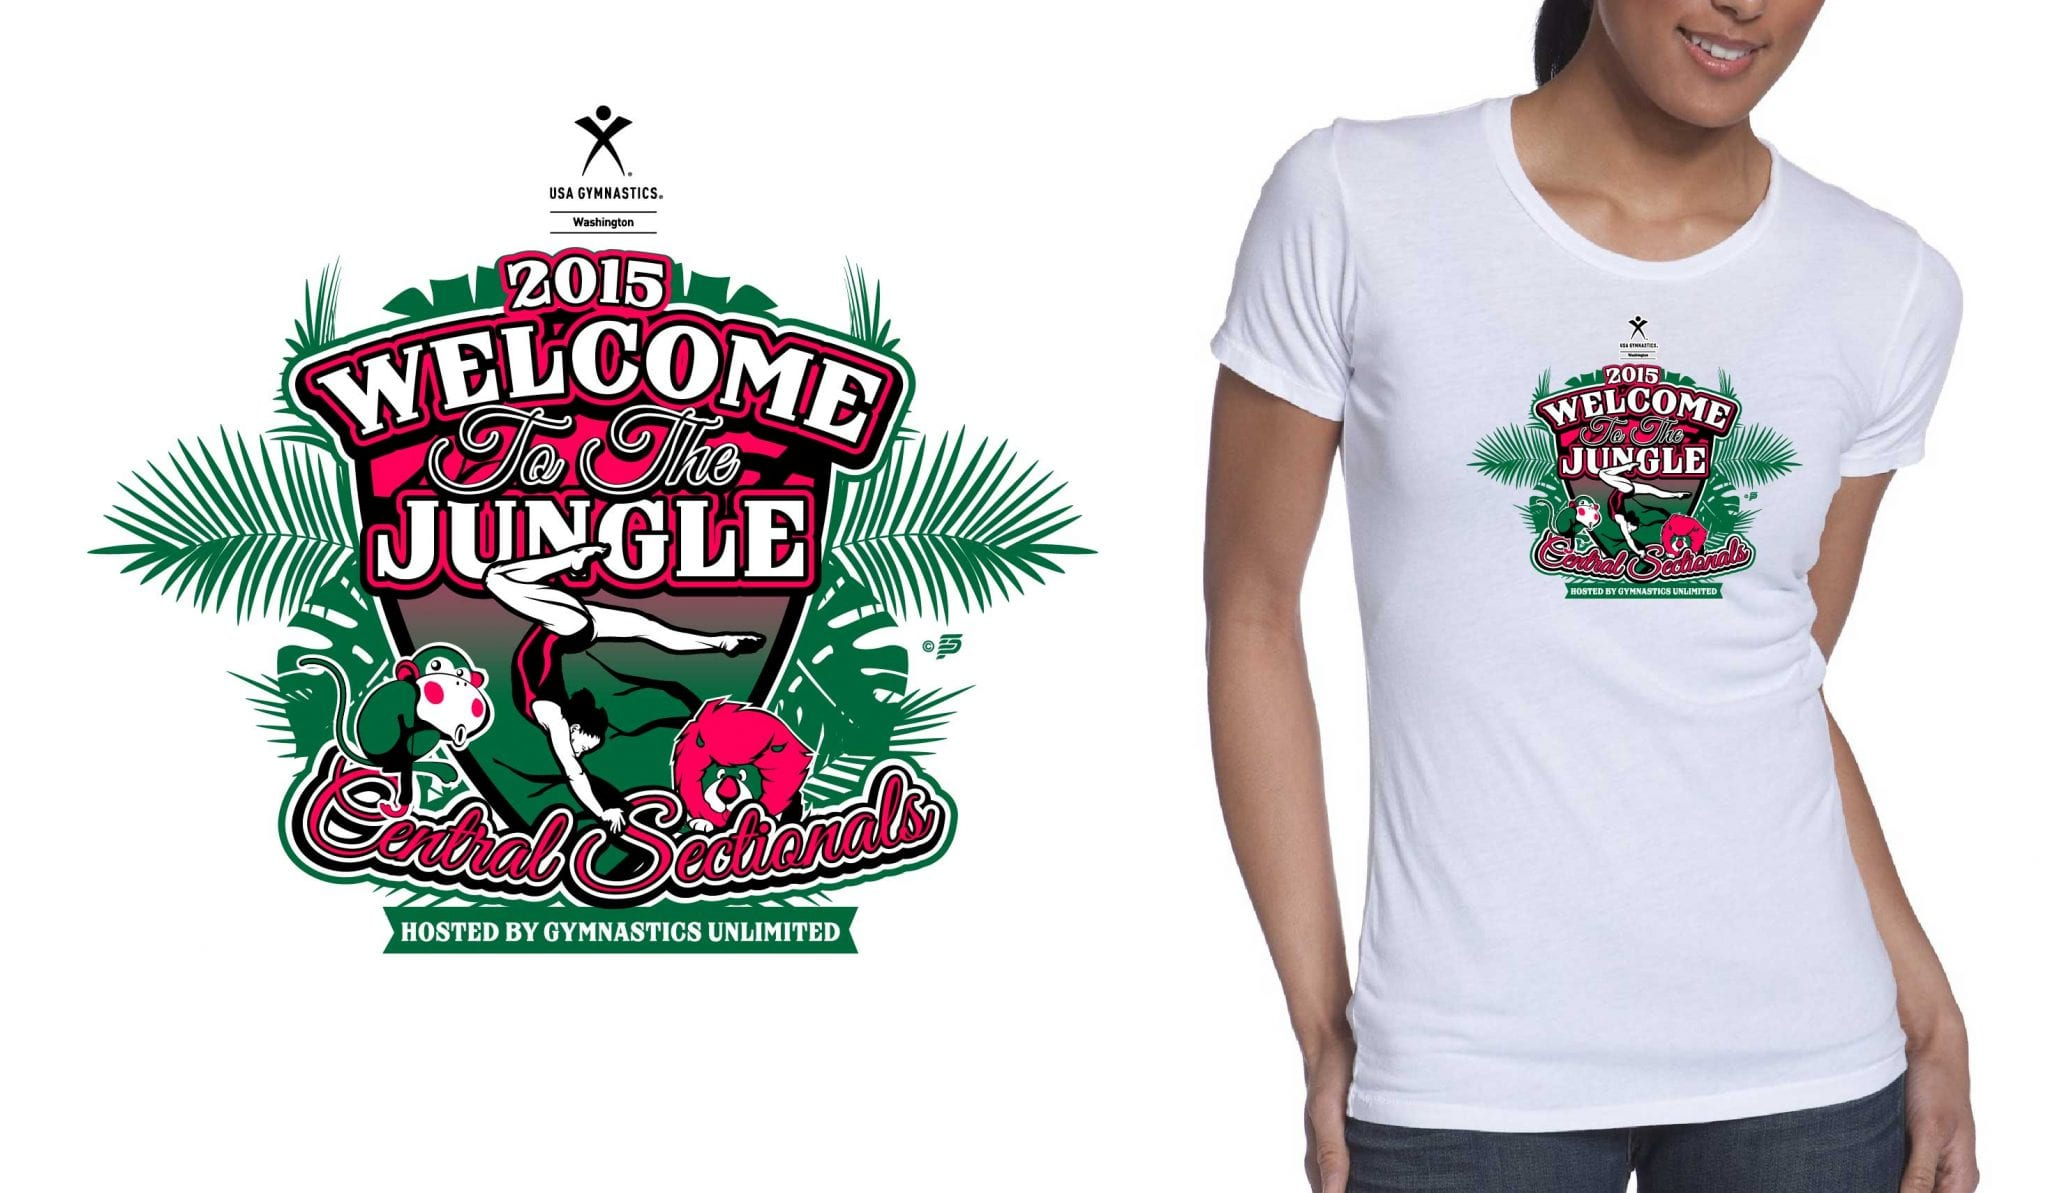 2015 Welcome to the Jungle Central Sectionals PRINT READY UPDATED